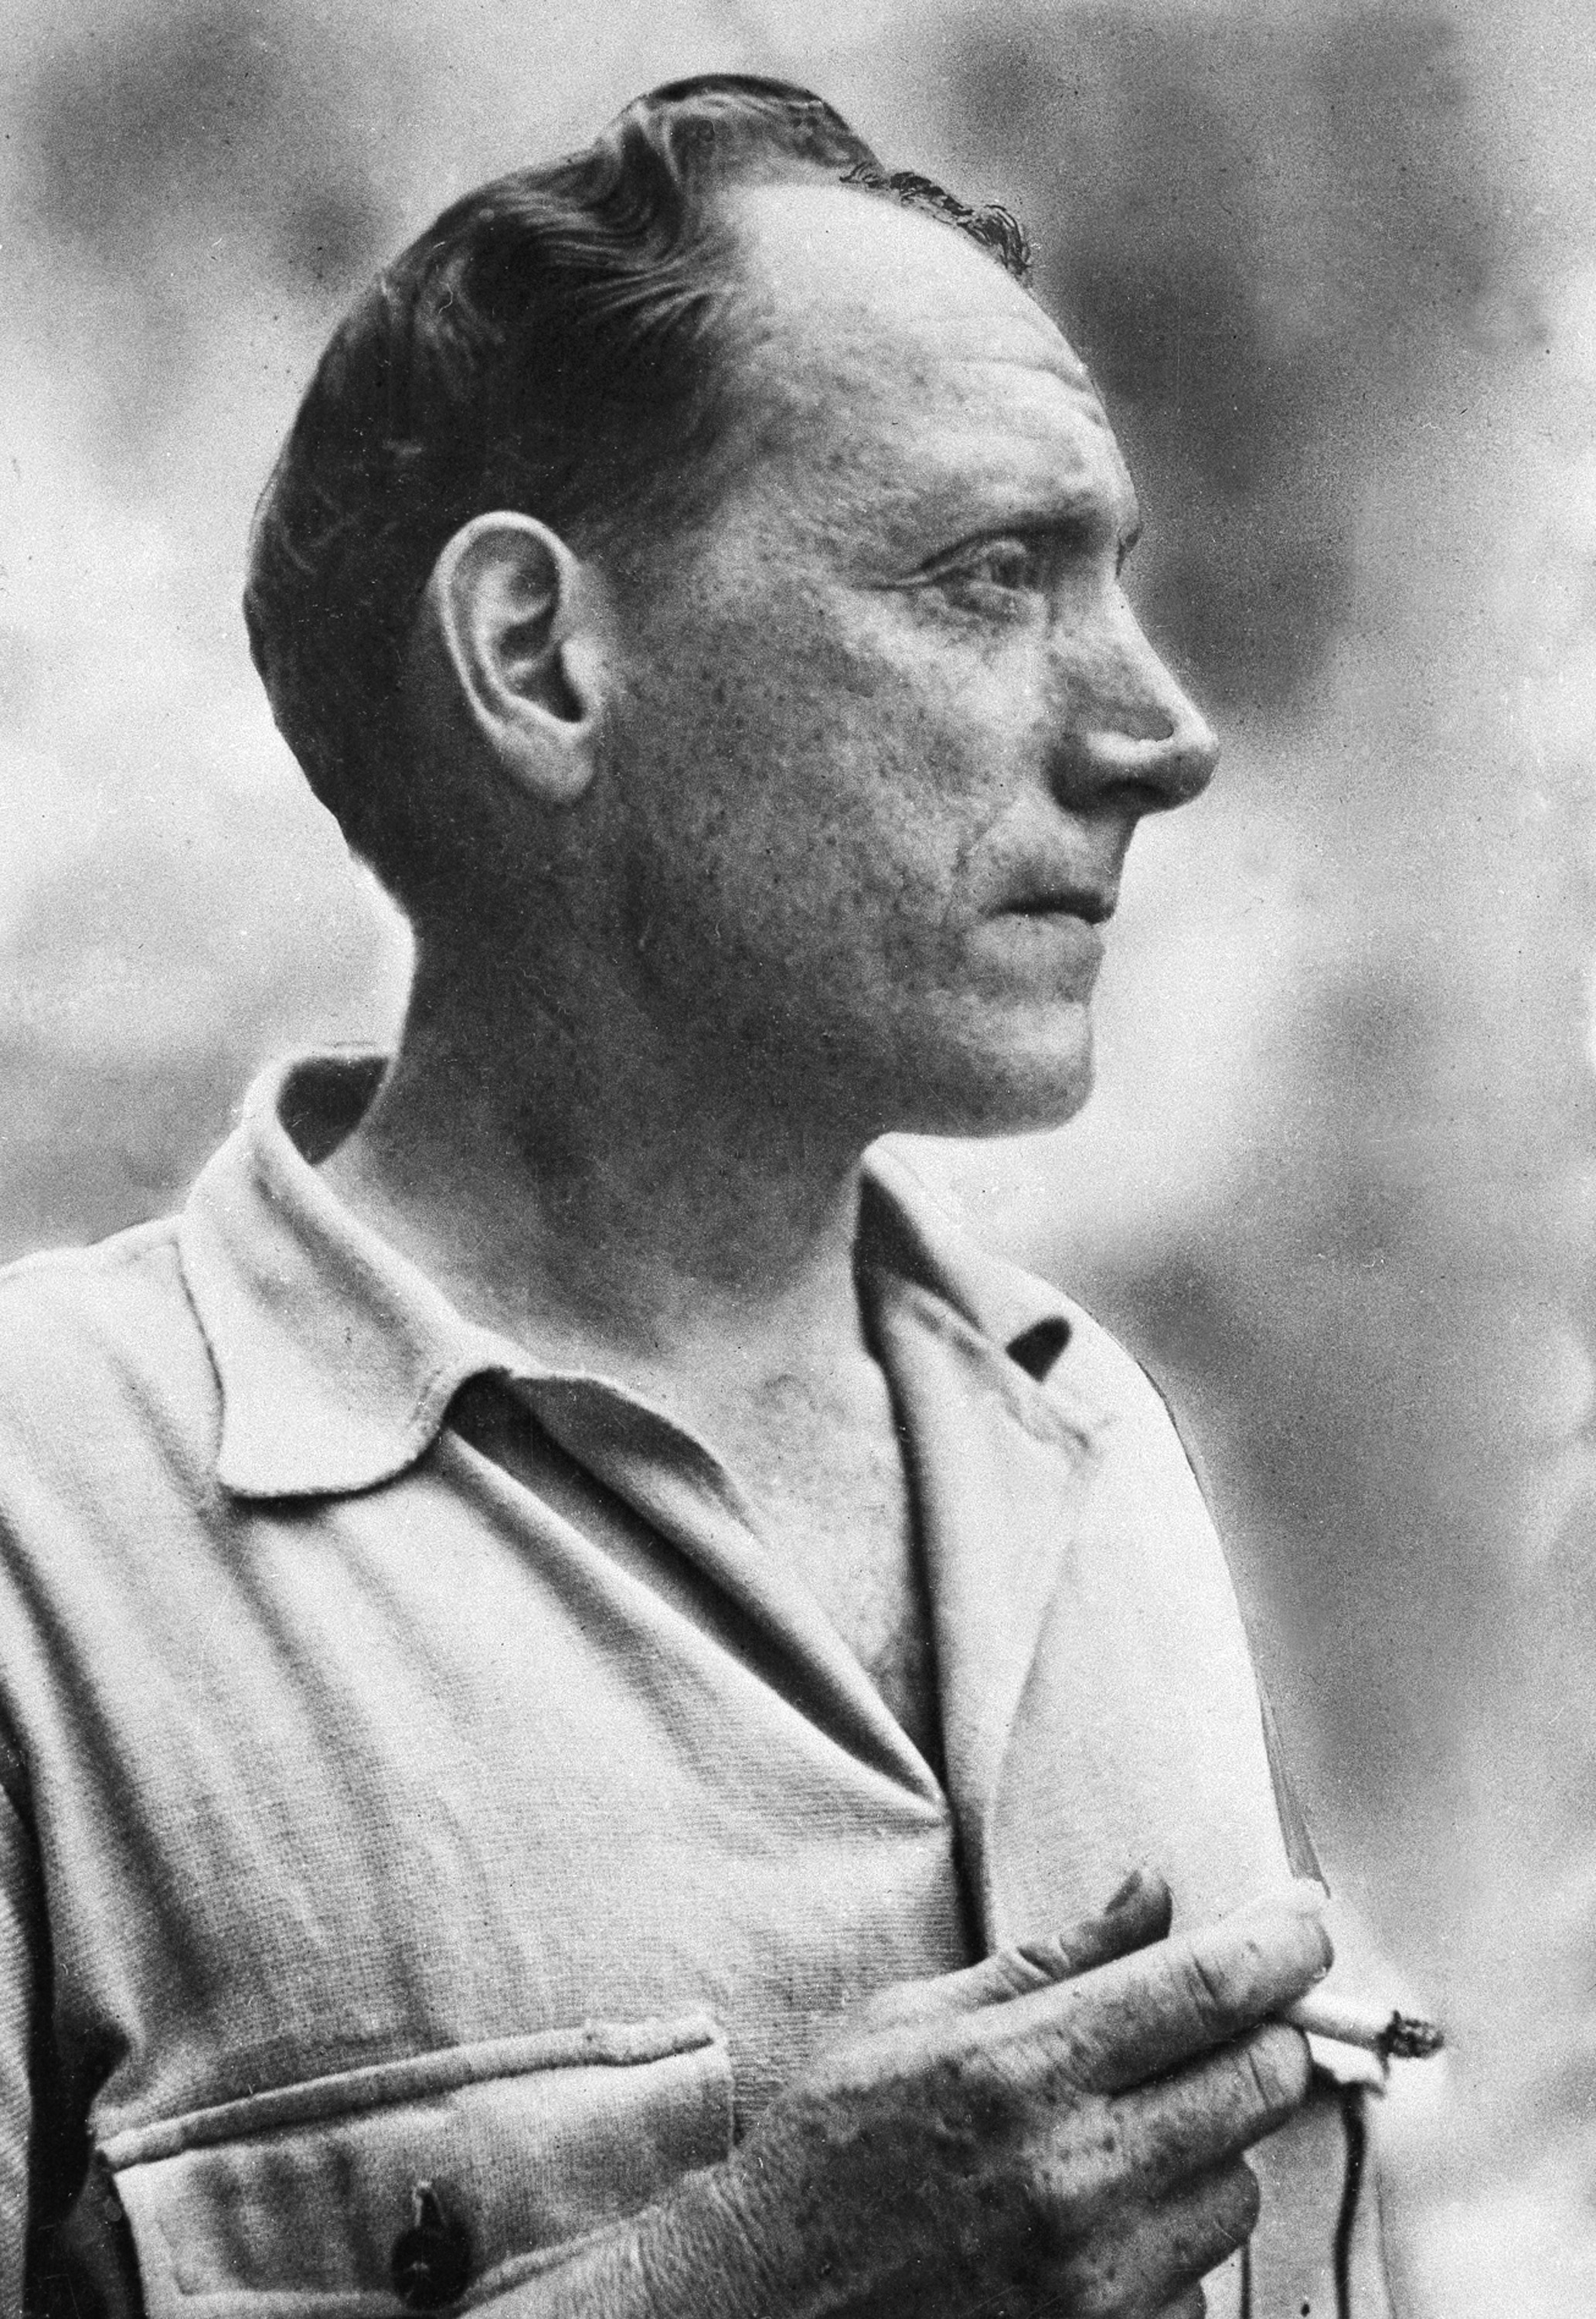 robert penn warren Robert penn warren (april 24, 1905 – september 15, 1989) was an american poet, novelist, and literary critic and was one of the founders of new criticism he was also a charter member of the fellowship of southern writers he founded the literary journal the southern review with cleanth brooks in 1935.